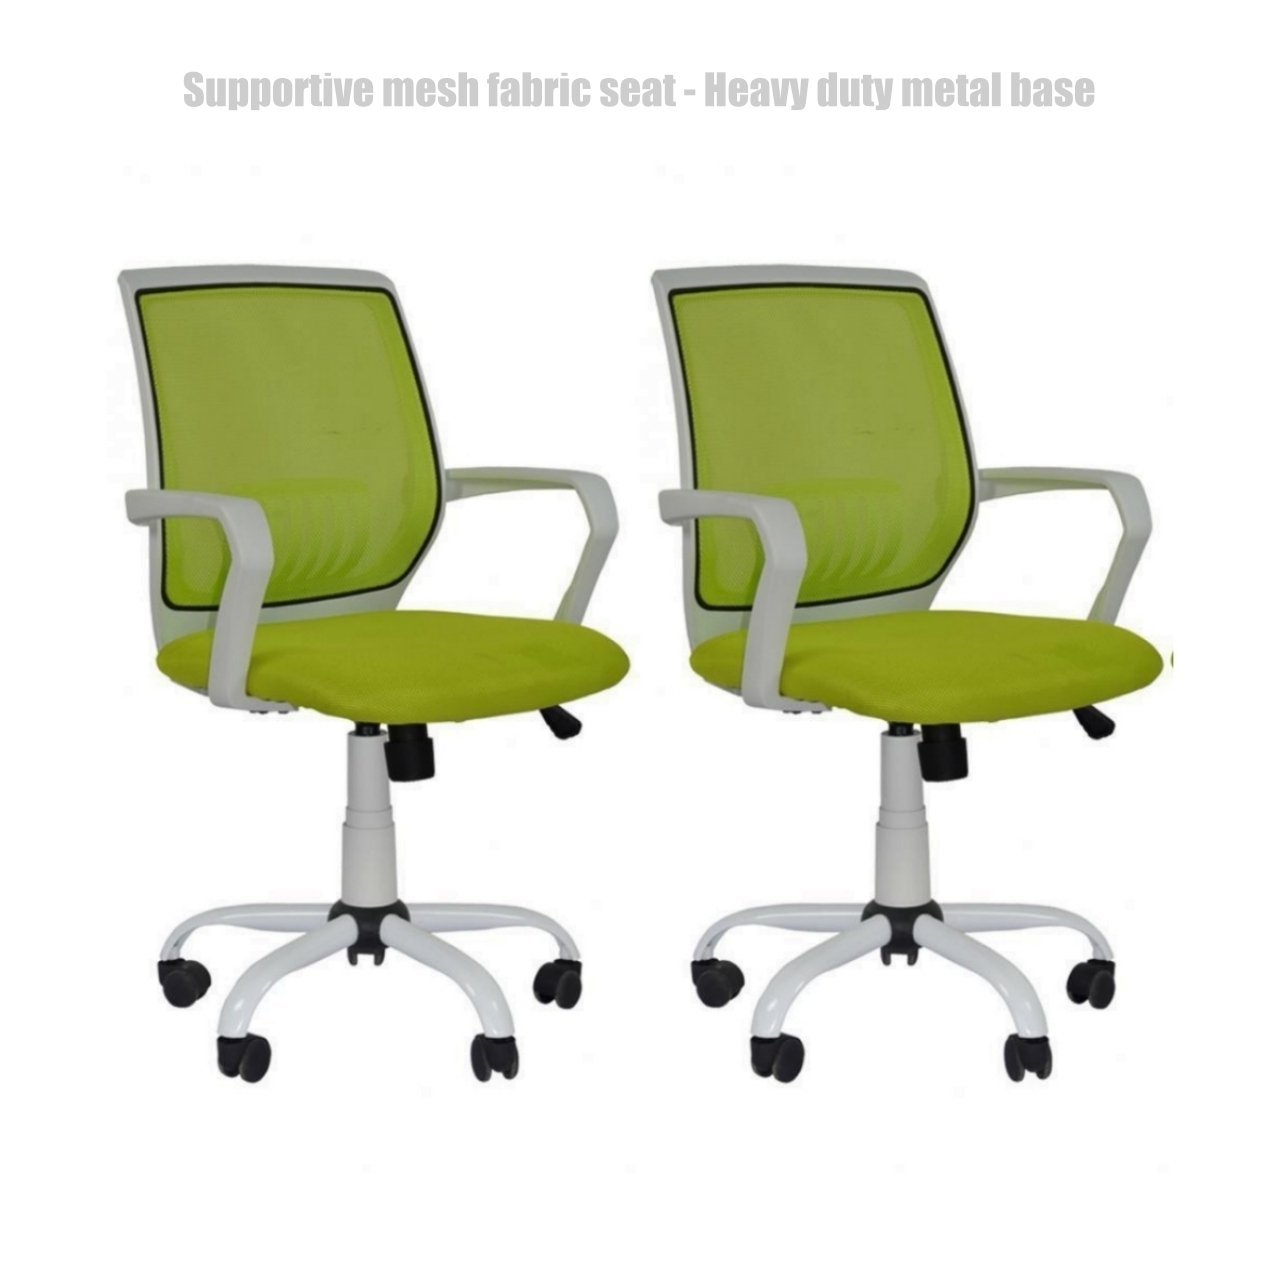 Modern Office Desk Task Chair Mid Back Design Breathable-Mesh-Fabric Comfortable Armrests Heavy Duty Metal Base Ergonomic Design Executive Chair - Set of 2 Green #1493